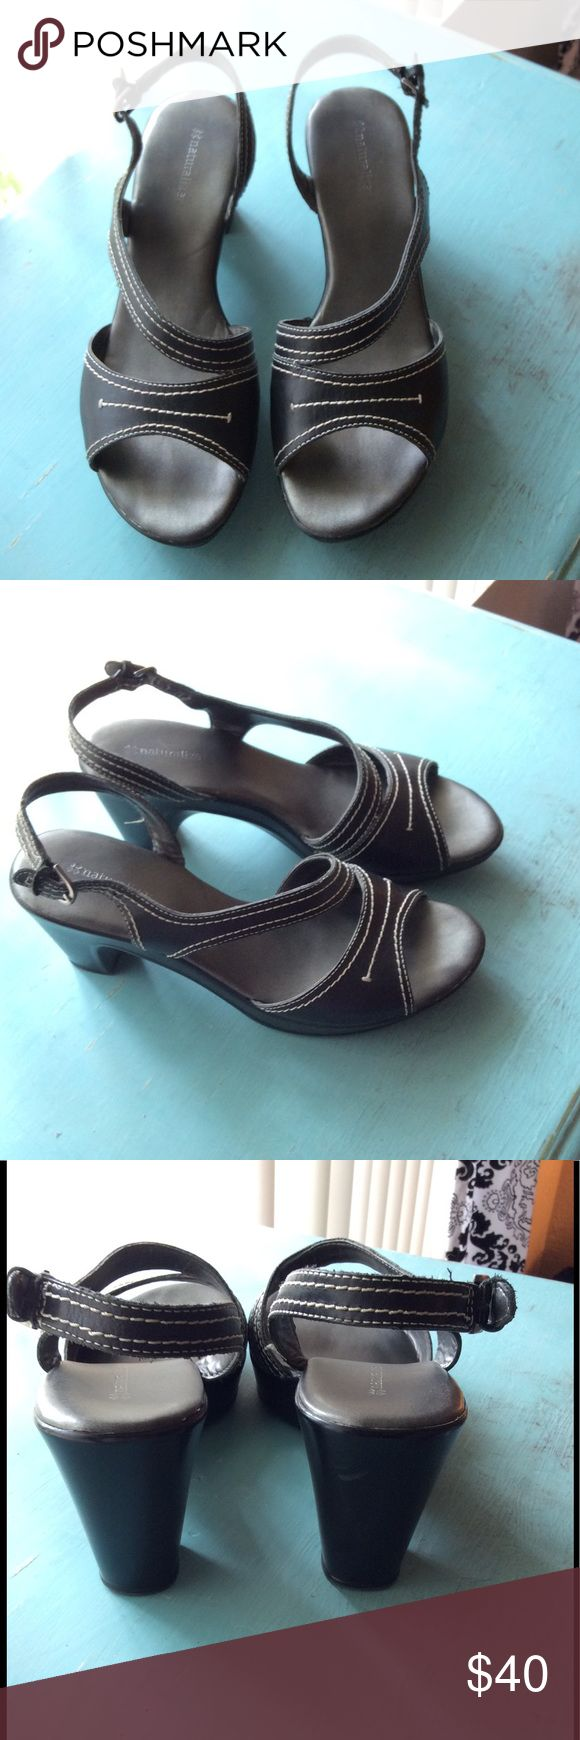 "NATURALIZER Shoes EUC NATURALIZER Shoes, 3"" heel Naturalizer Shoes"